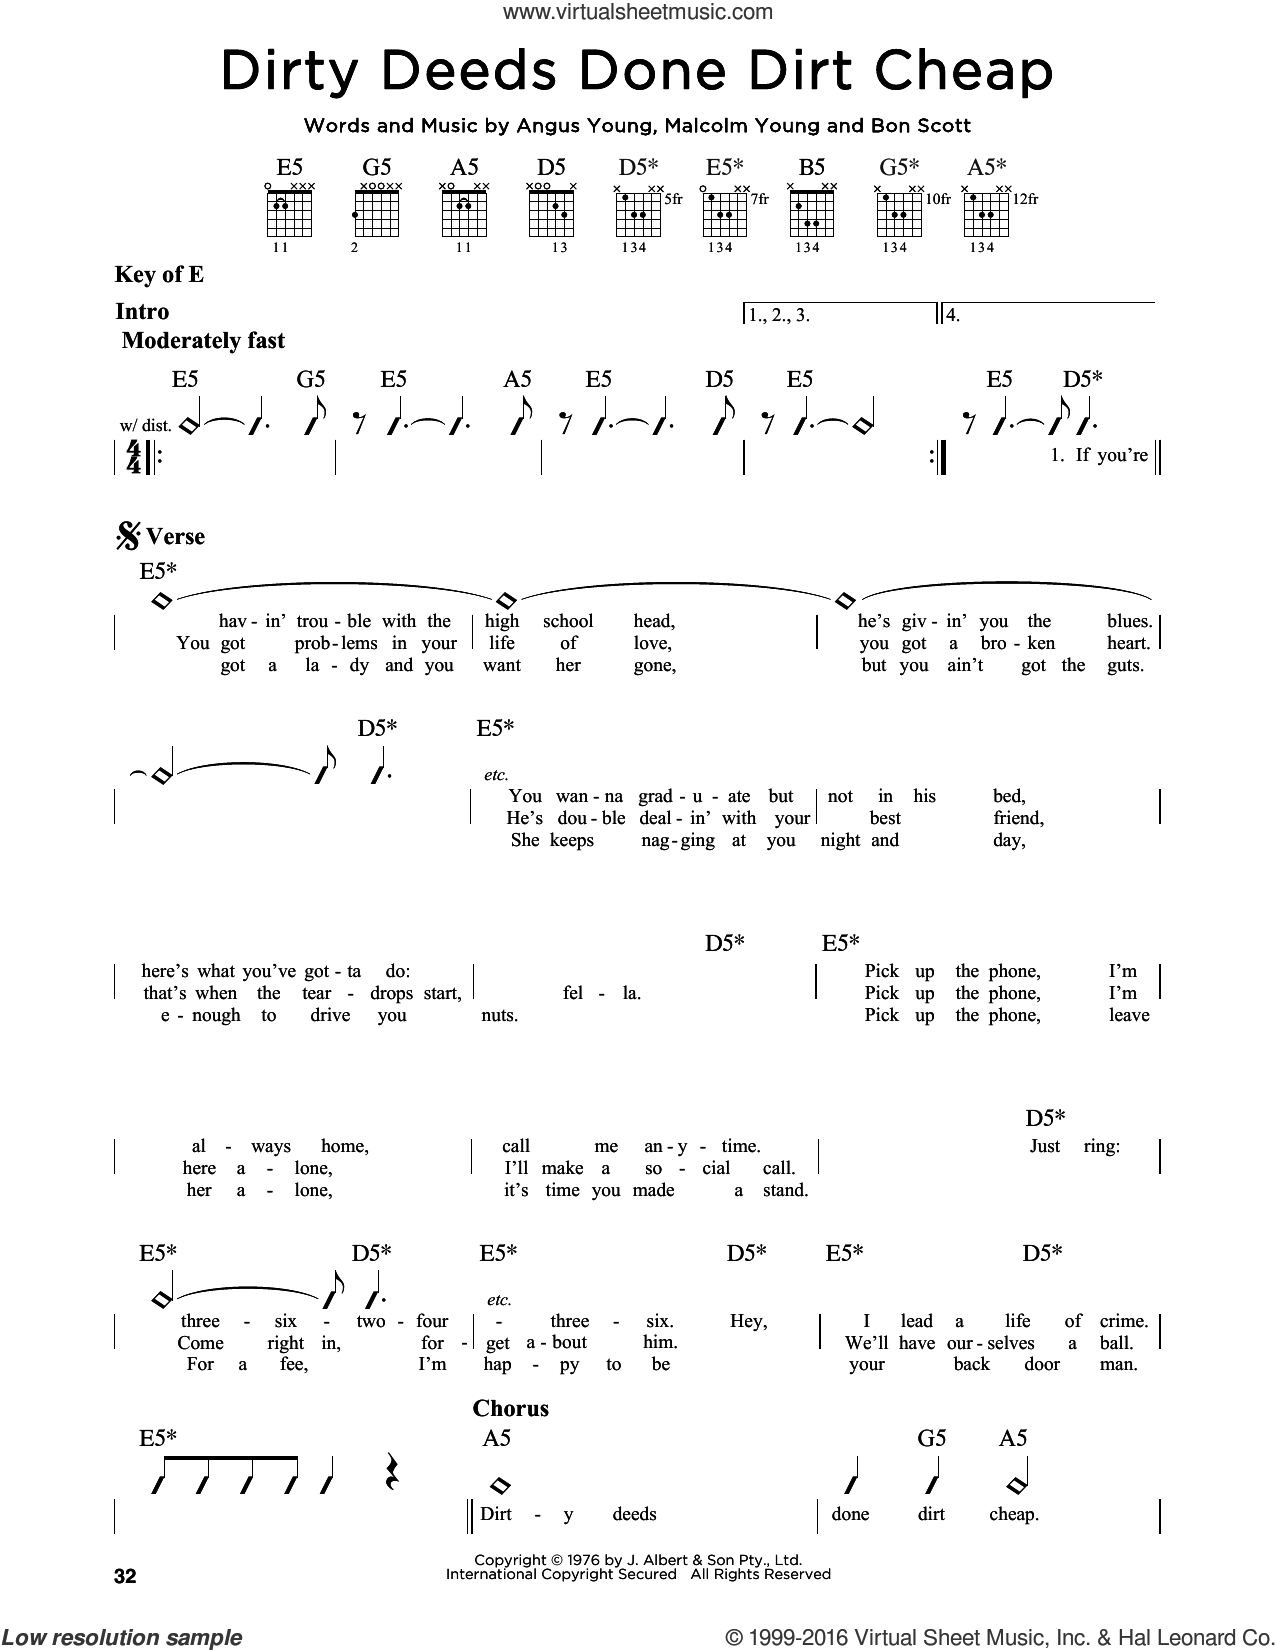 Dirty Deeds Done Dirt Cheap sheet music for guitar solo (lead sheet) by Malcolm Young